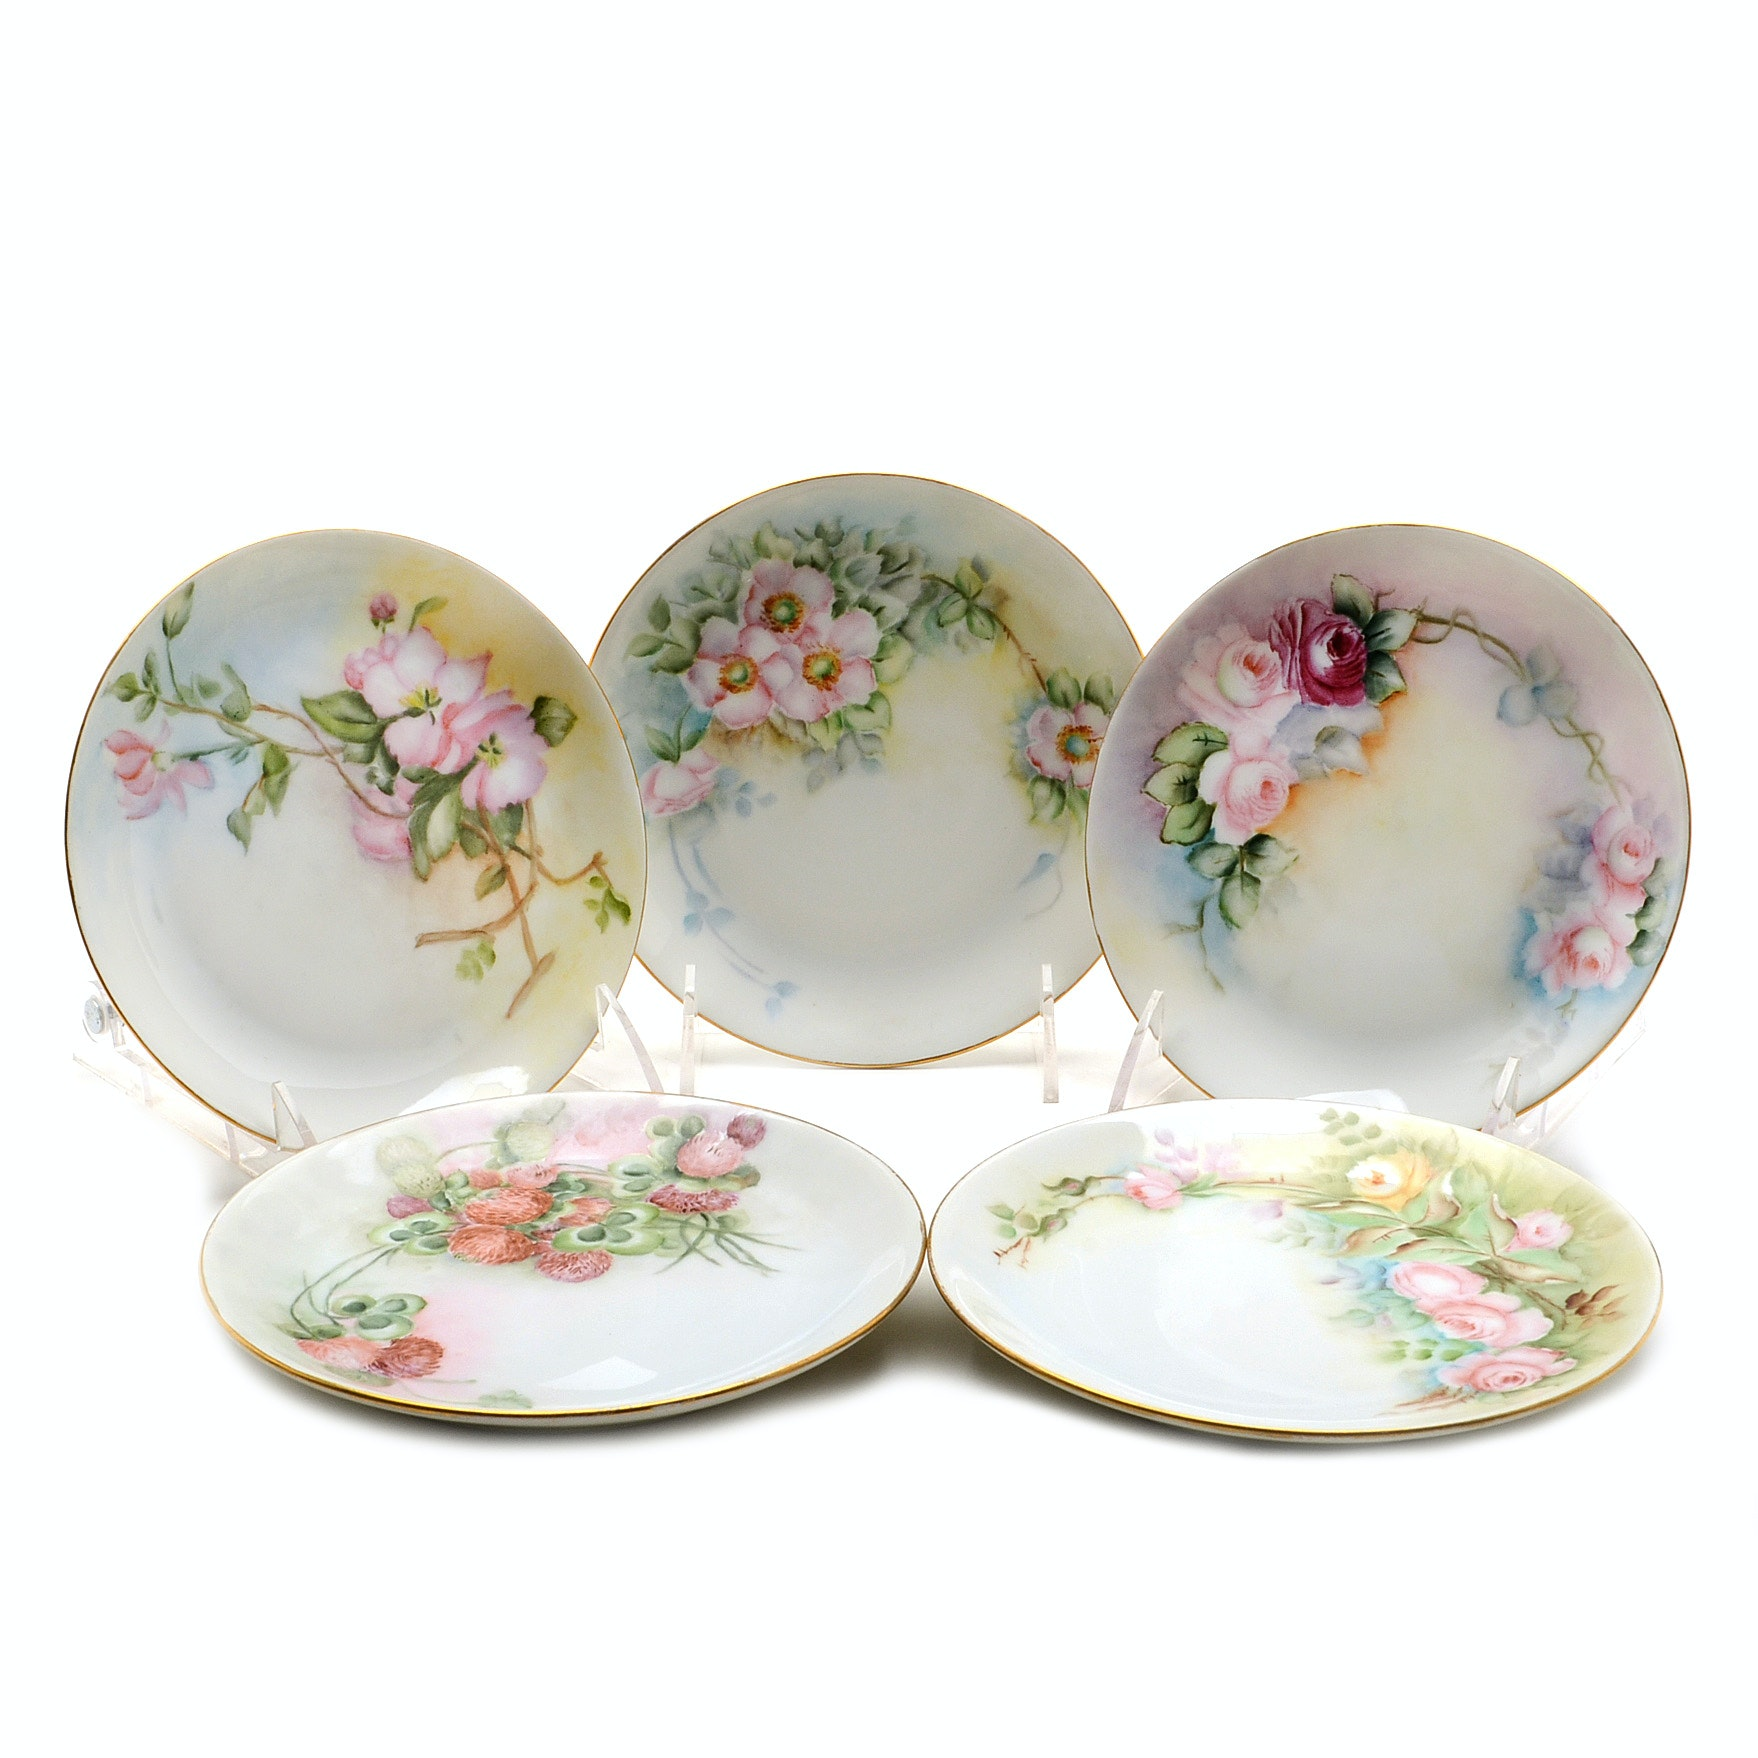 Hutschenreuther Hand Painted Plates